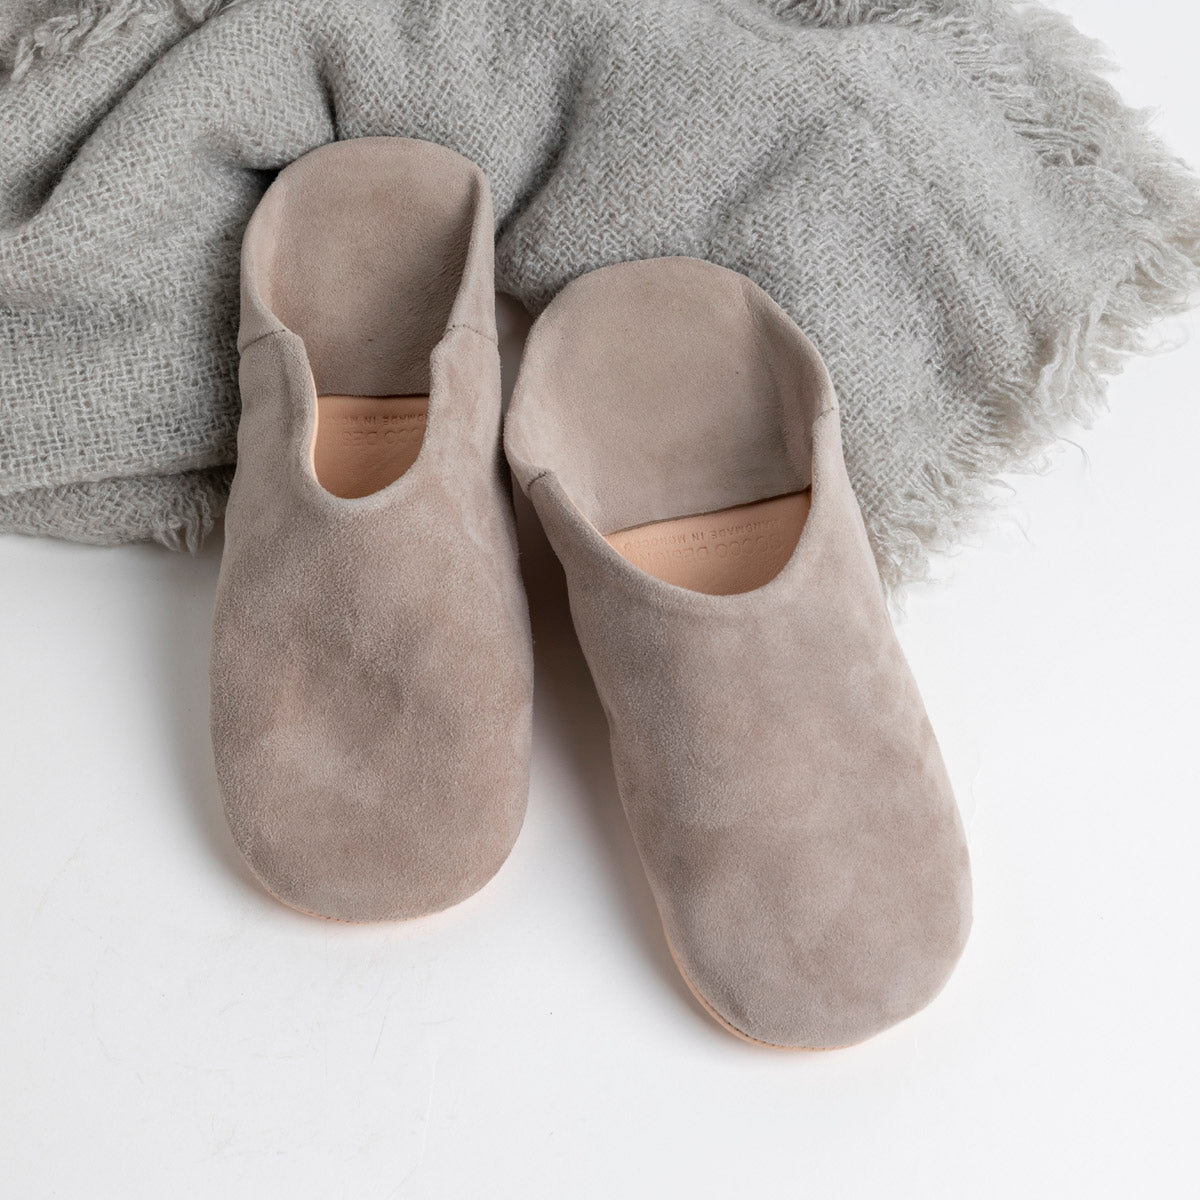 Moroccan Babouche Slippers in Grey available at PICNIC SF